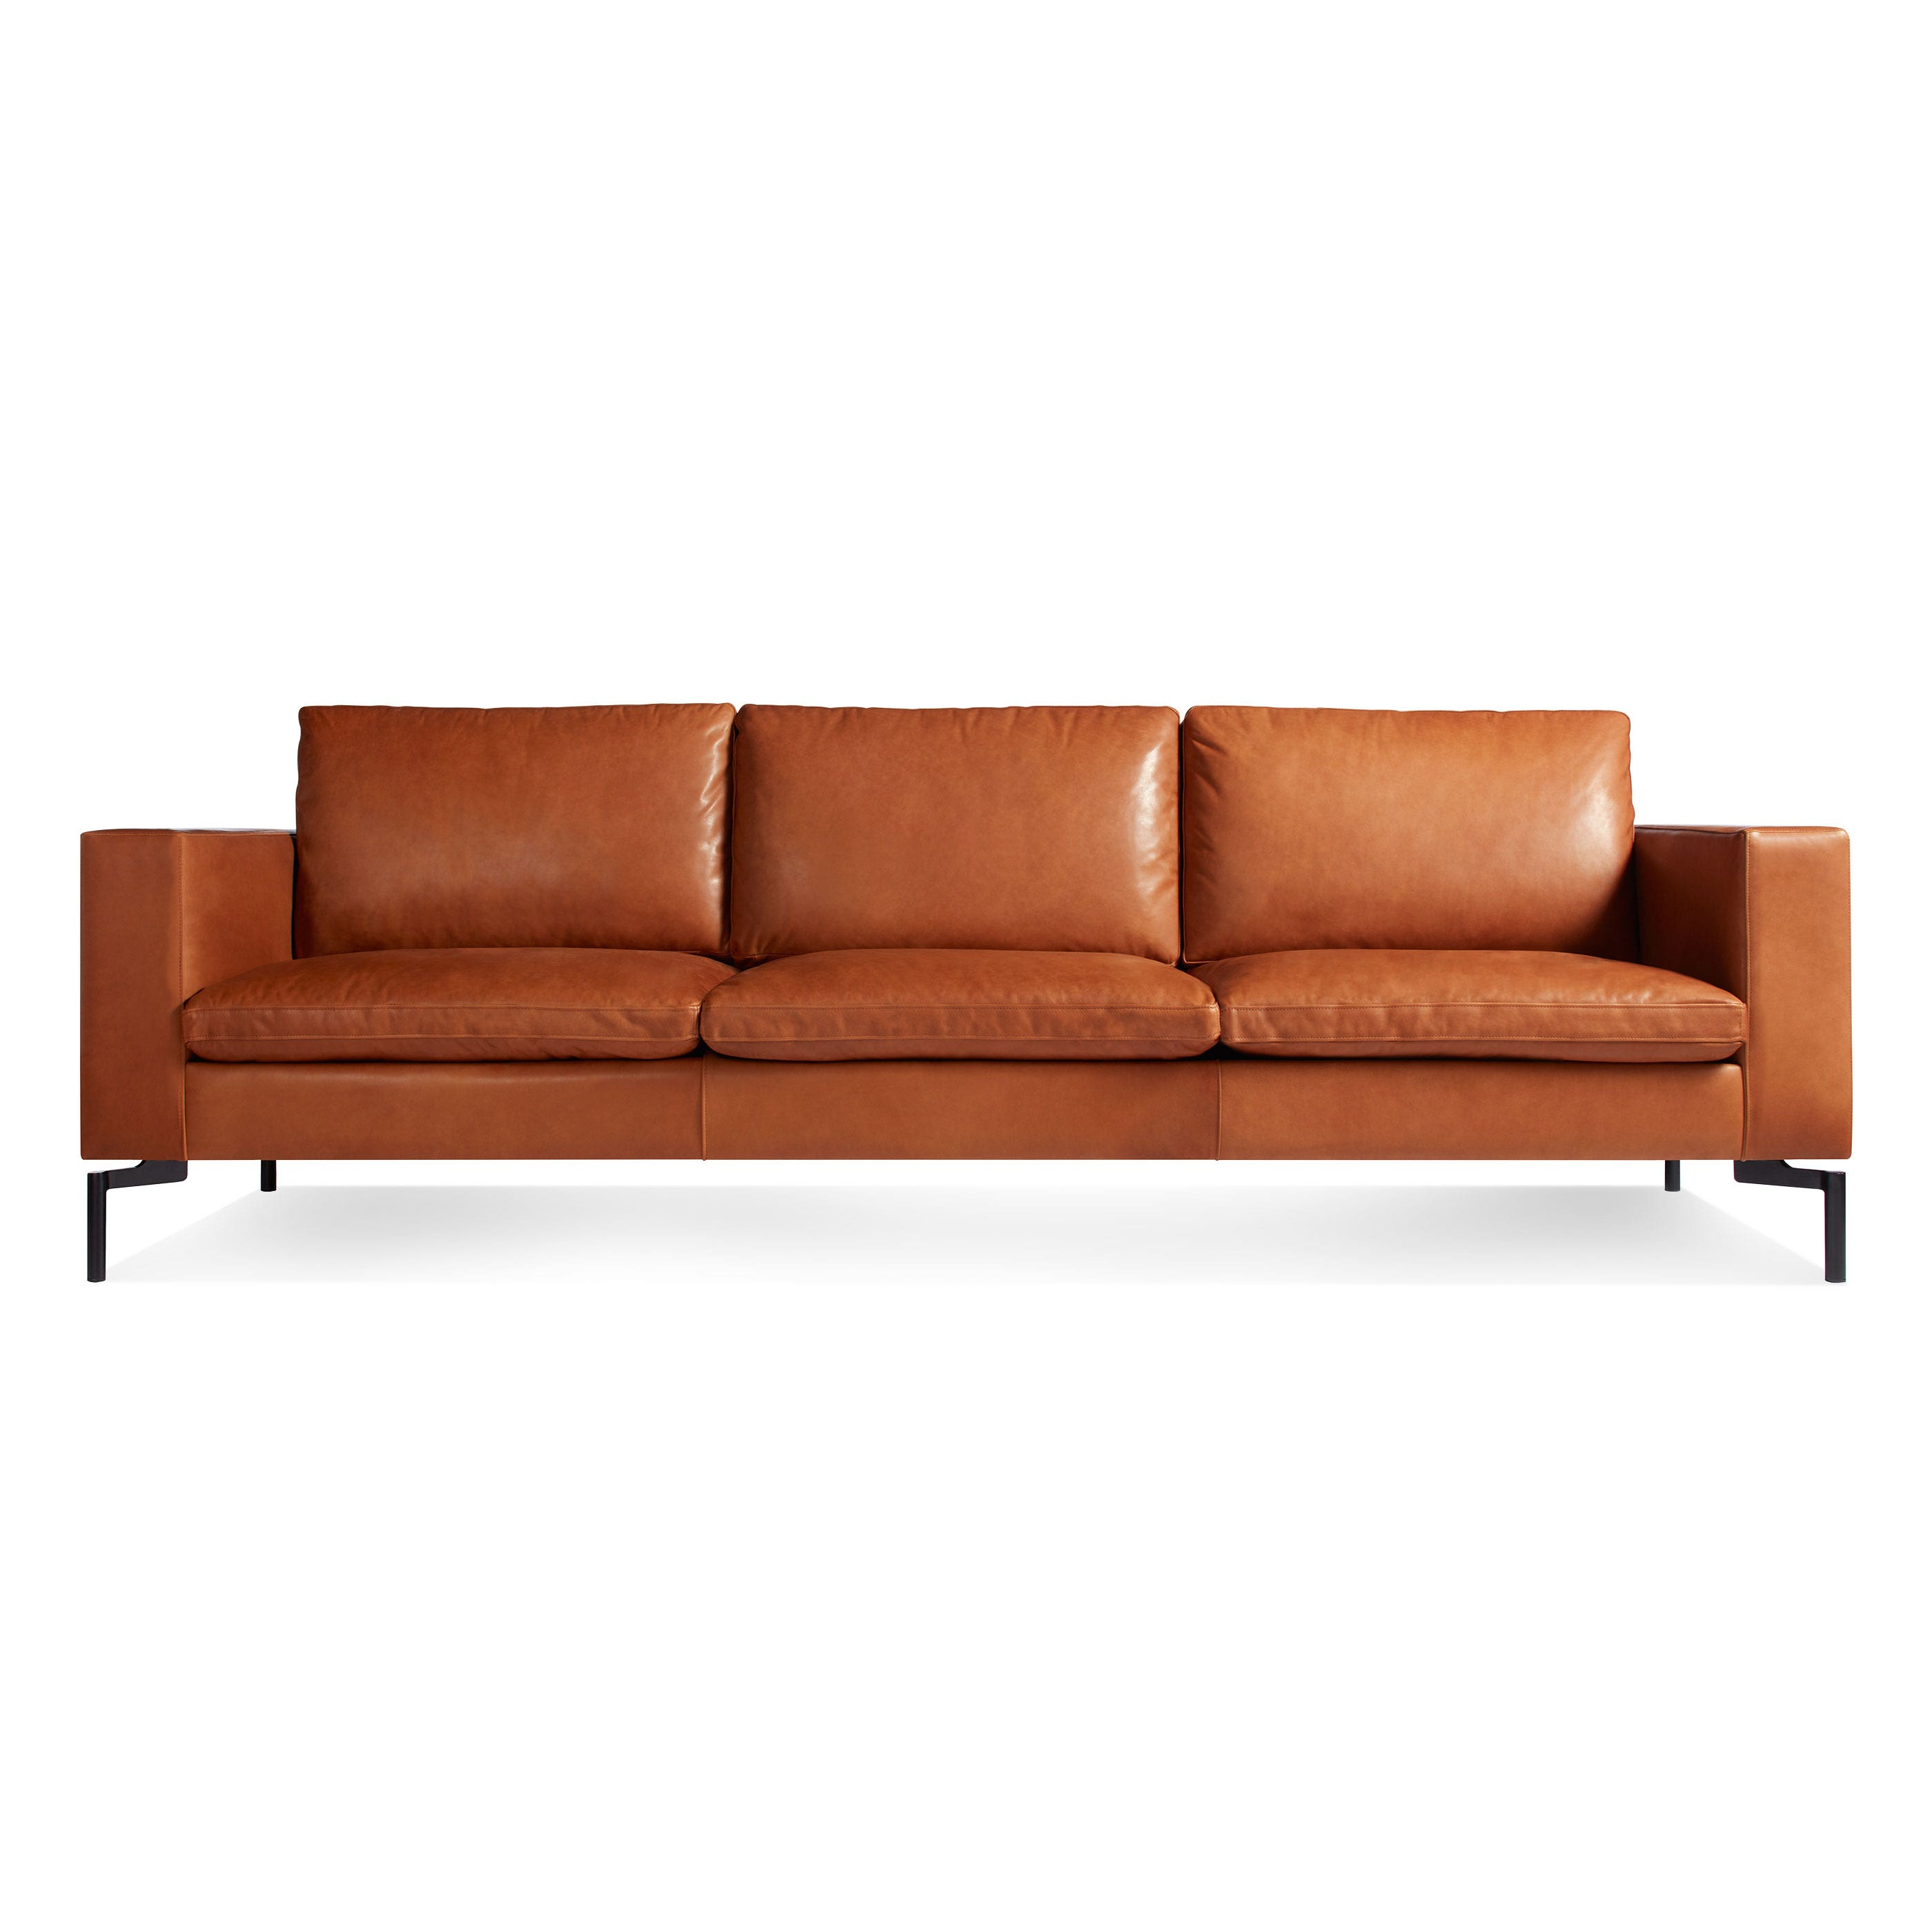 Previous Image New Standard Modern Black Leather Sofa ...